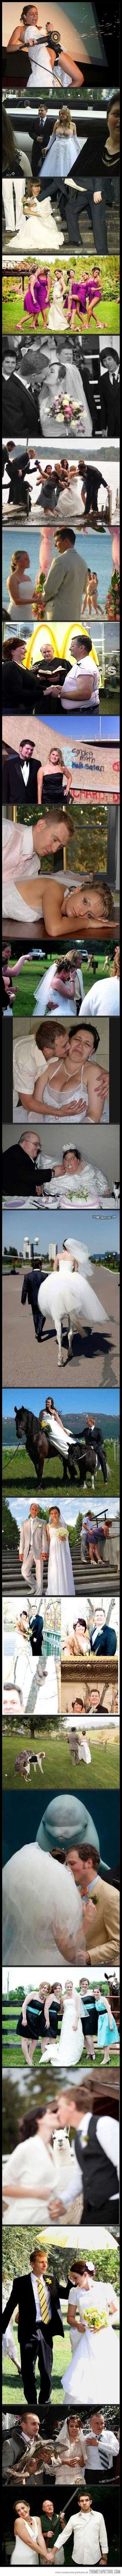 The most ridiculous wedding photos EVER